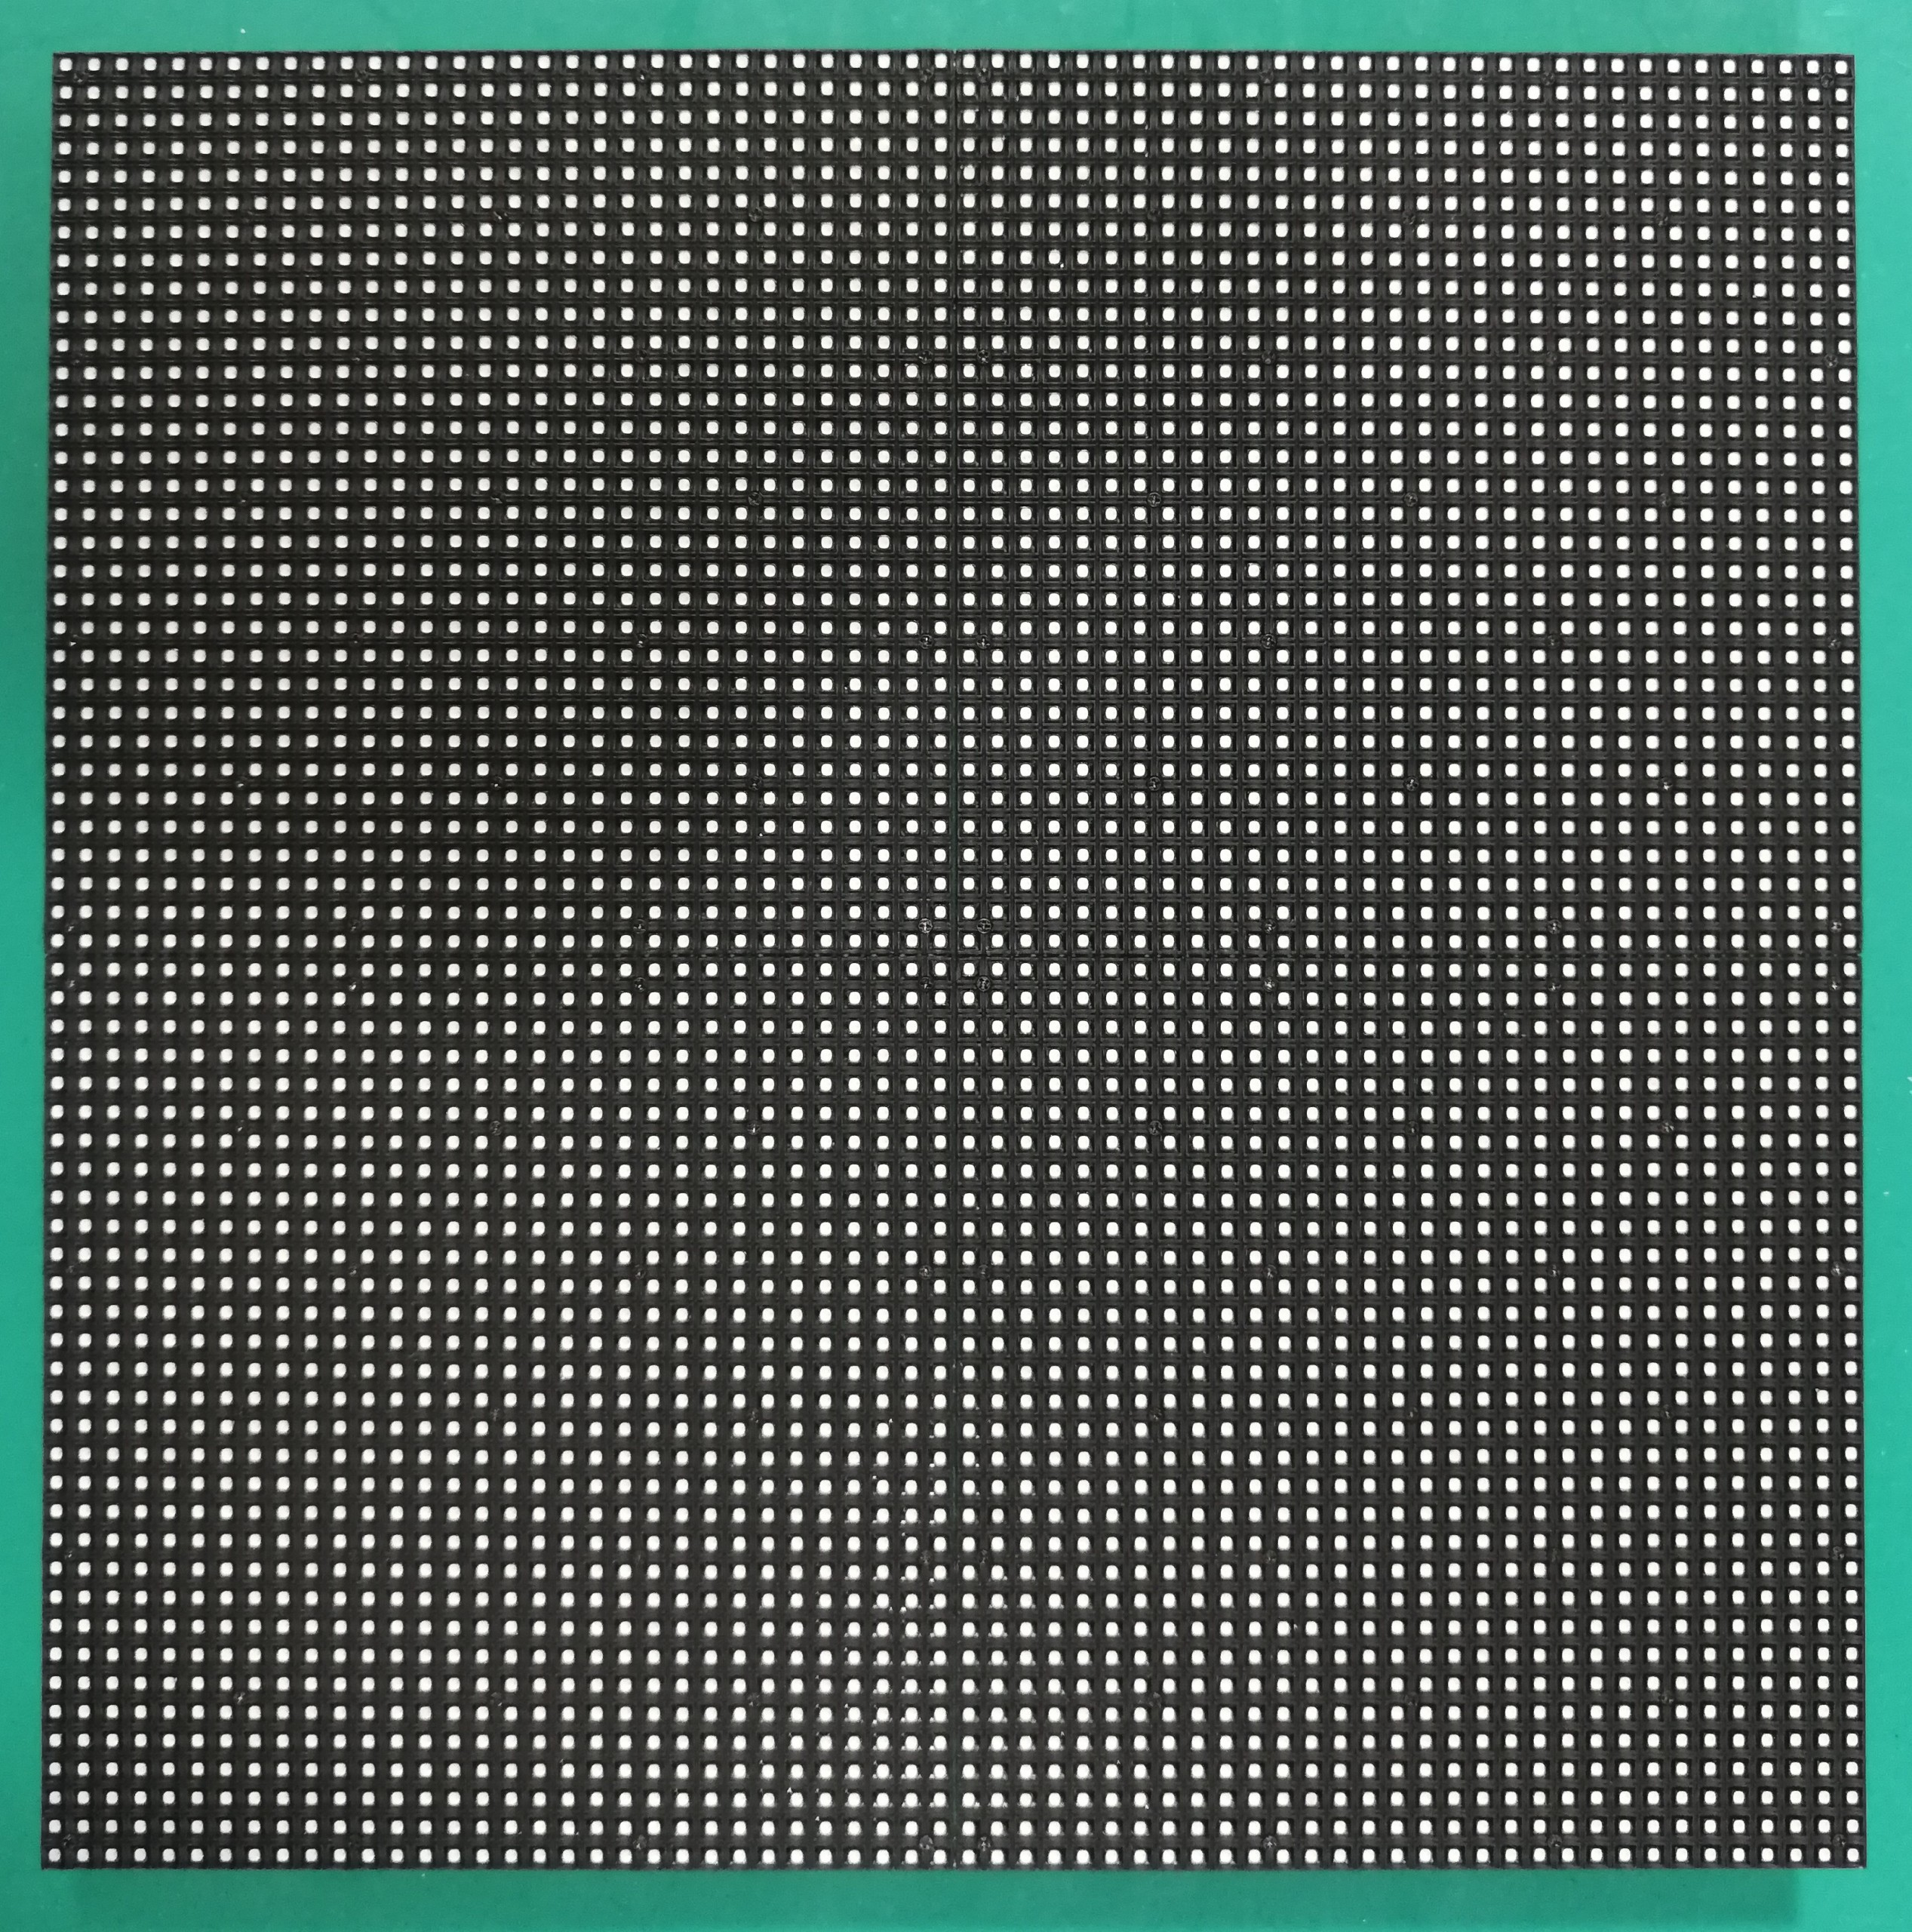 P3 Outdoor SMD LED Display Module 192 x 192mm